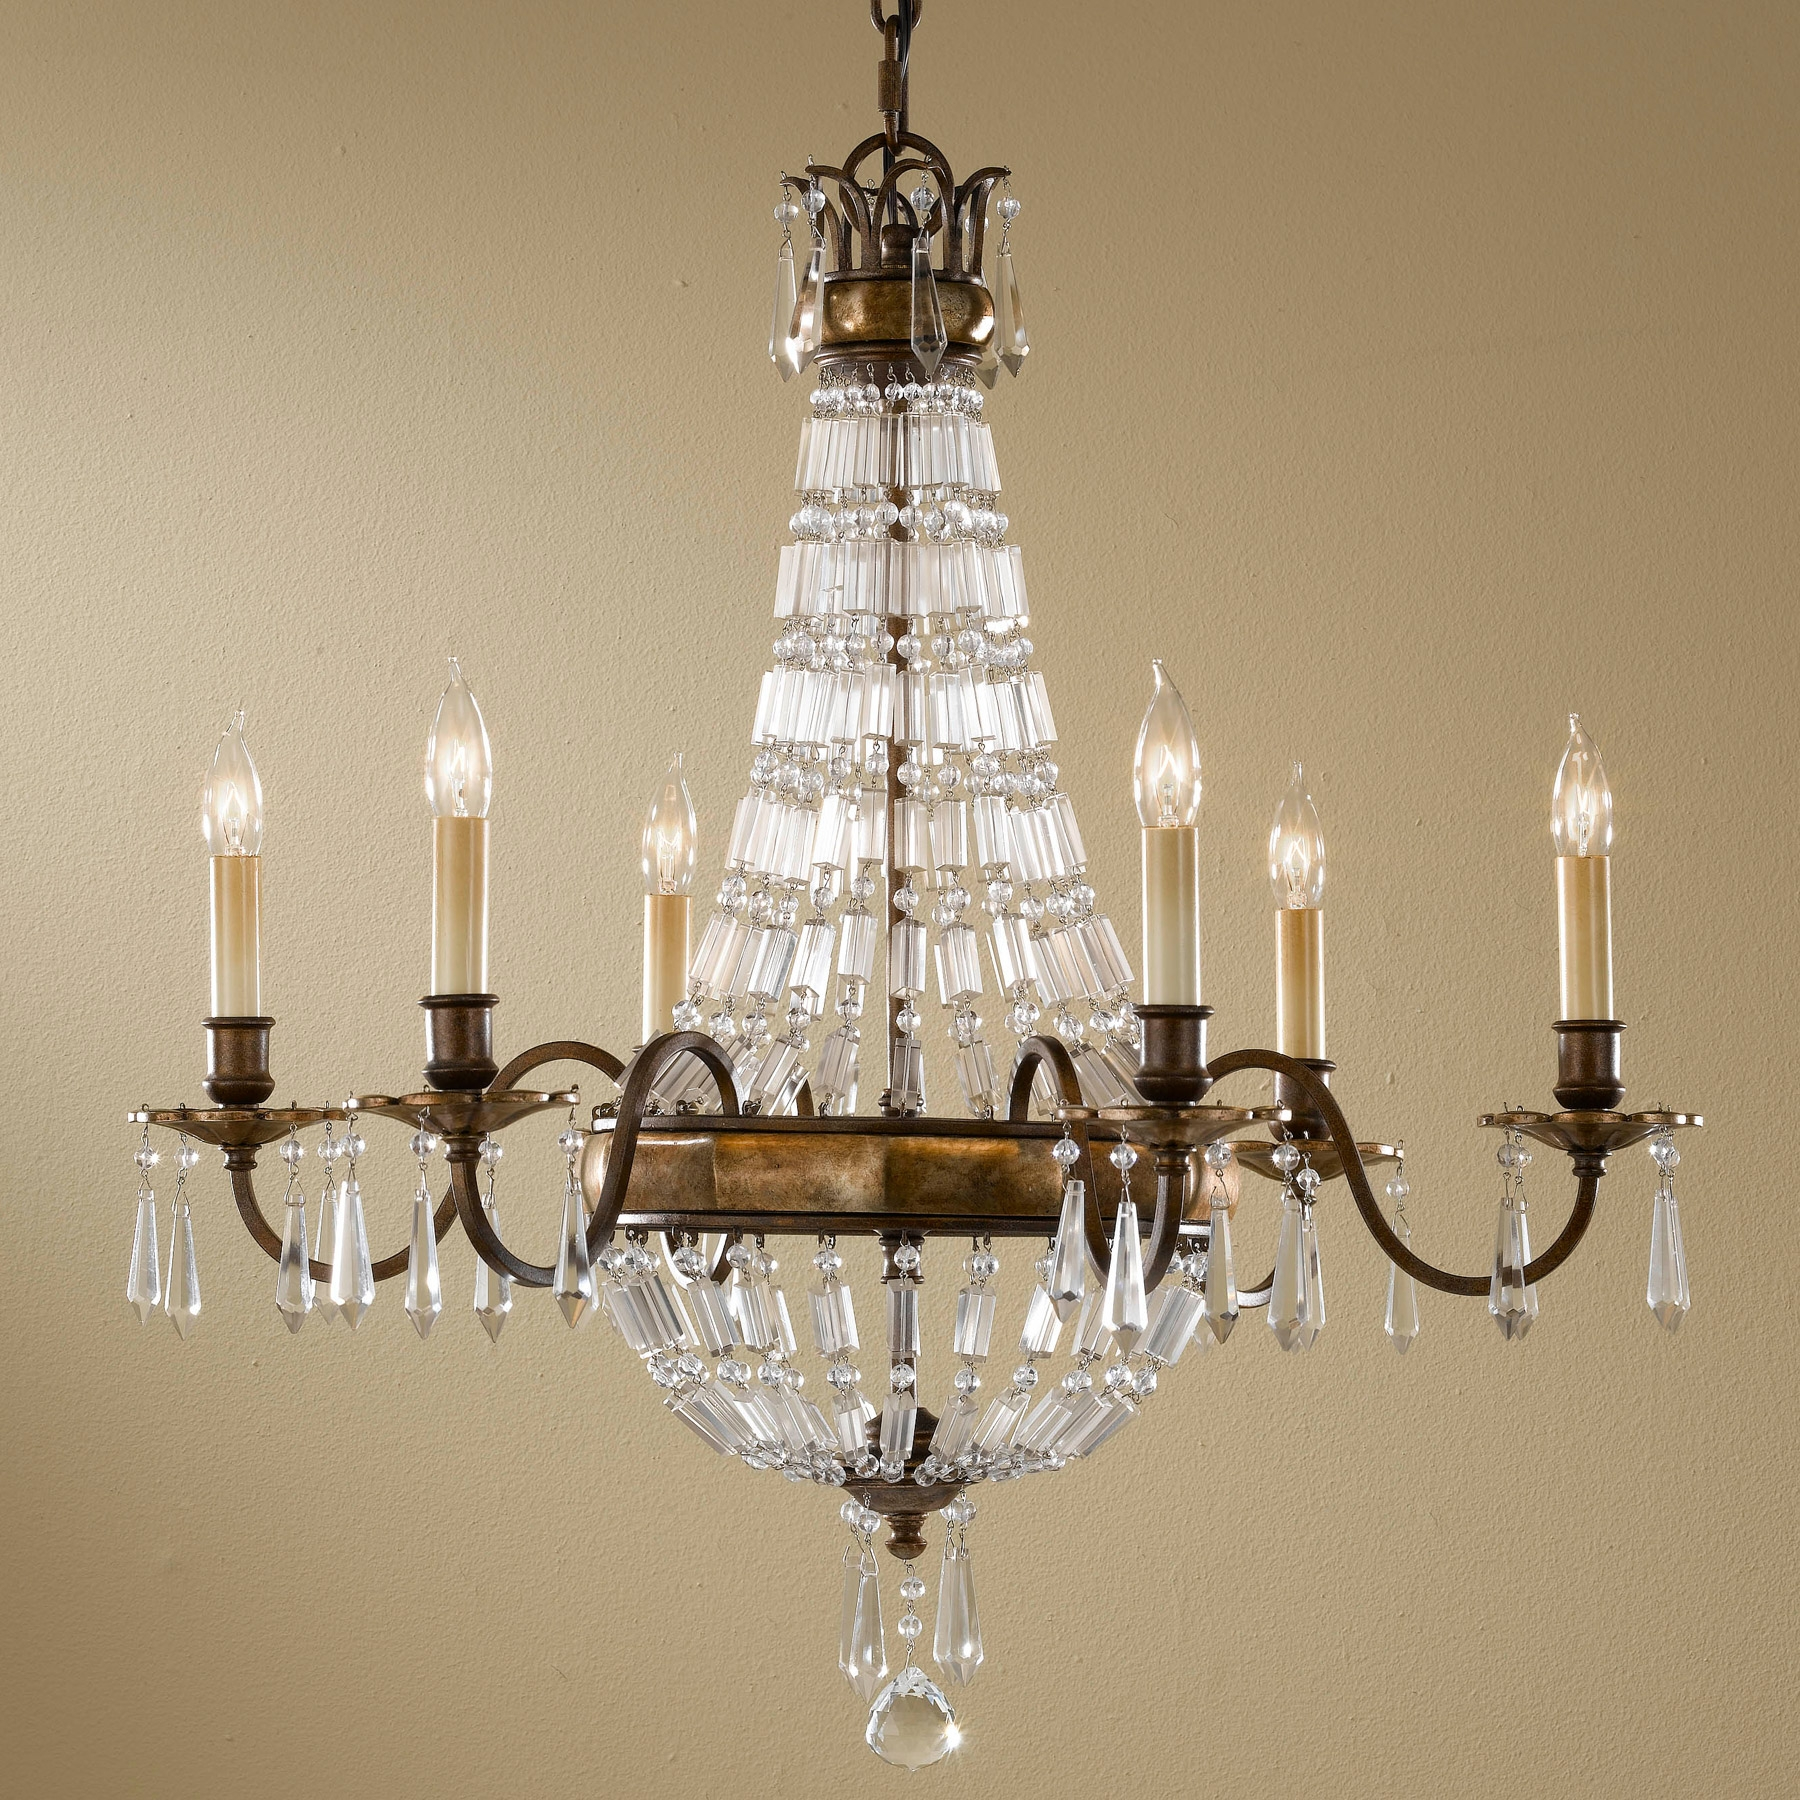 Murray Feiss Chandeliers Lamps Beautiful With Regard To Feiss Chandeliers (Image 17 of 25)